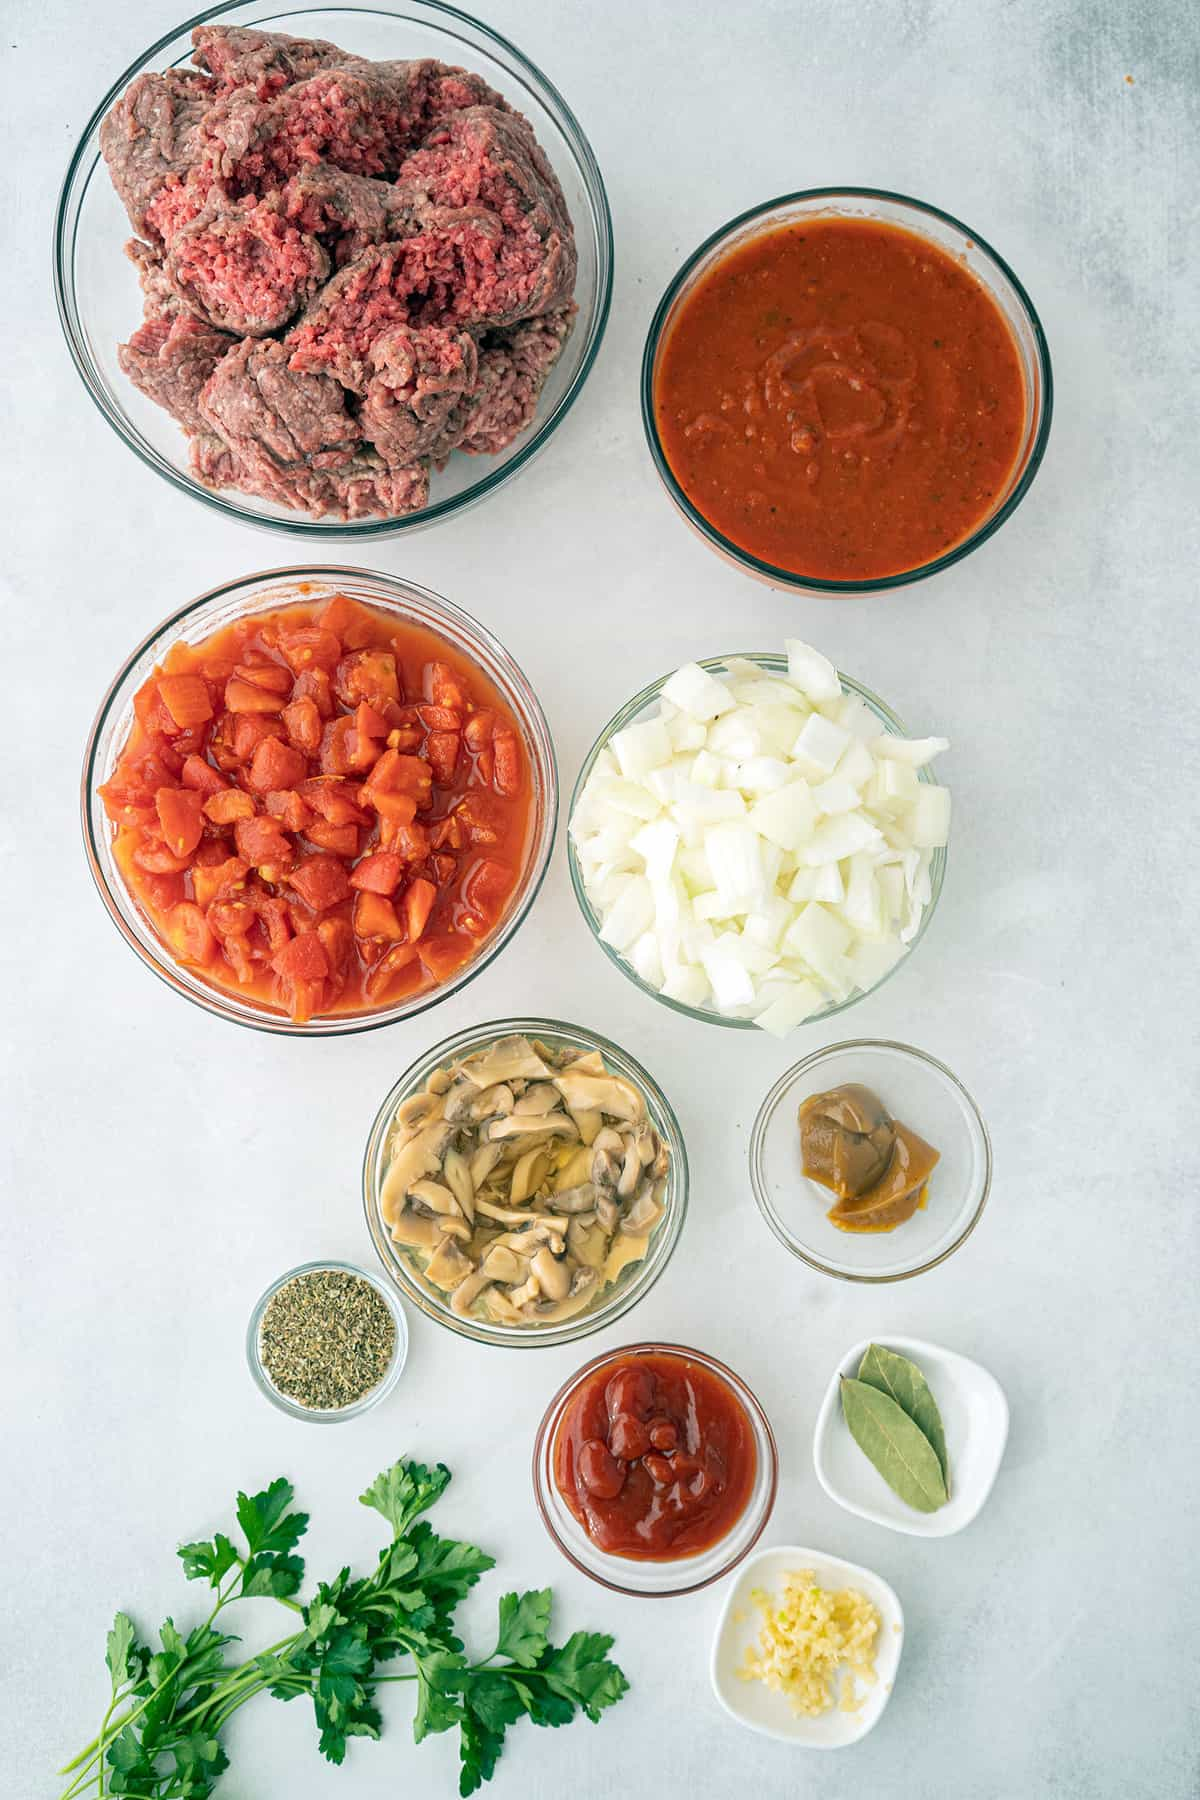 All the ingredients of a meat sauce in separate bowls.